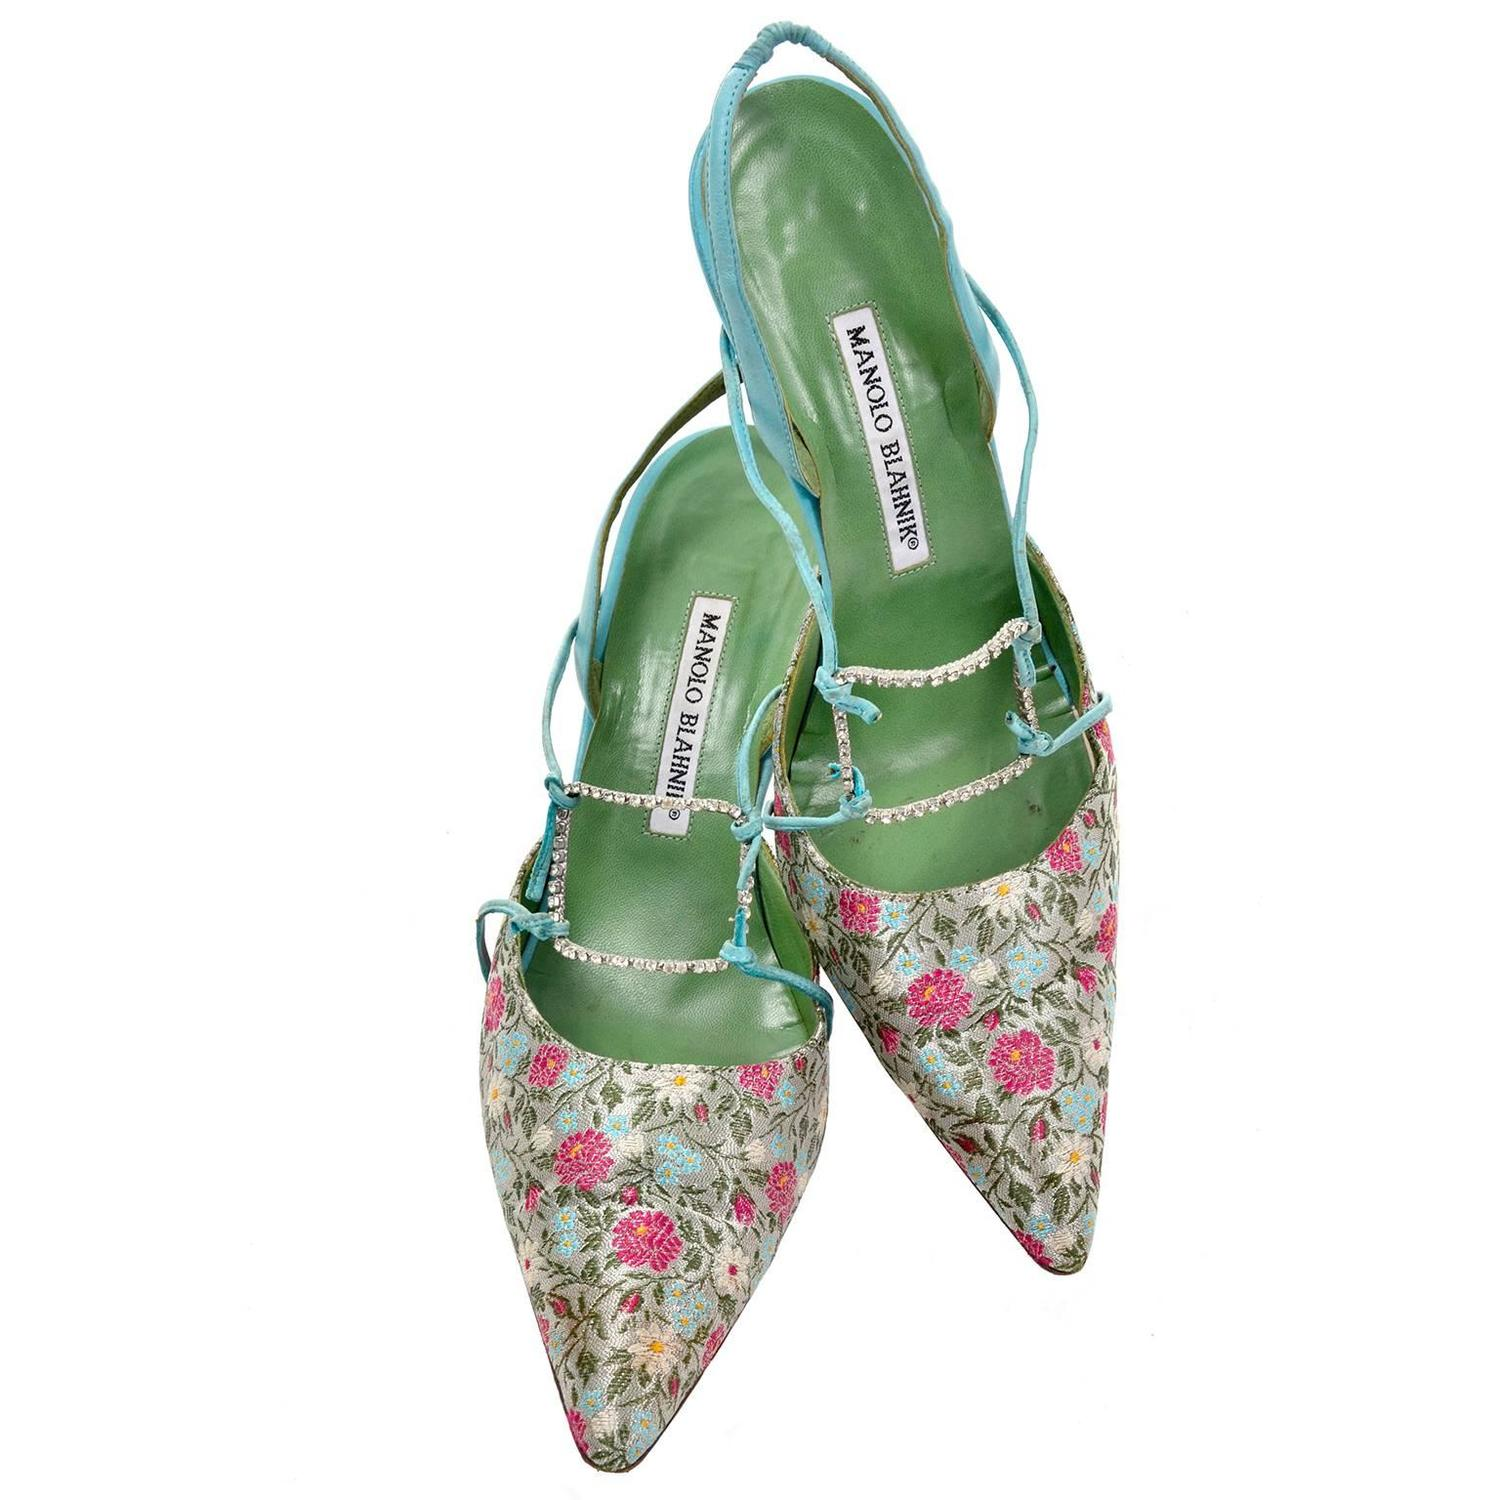 manolo blahnik Manolo blahnik shoes feature ornate detailing and divine embellishments from eye-catching crystals to embroidery from strappy manolo shoes to simply stunning pumps and anything-but-basic flats, you'll make a chic statement in your new pair of head-turning shoes.